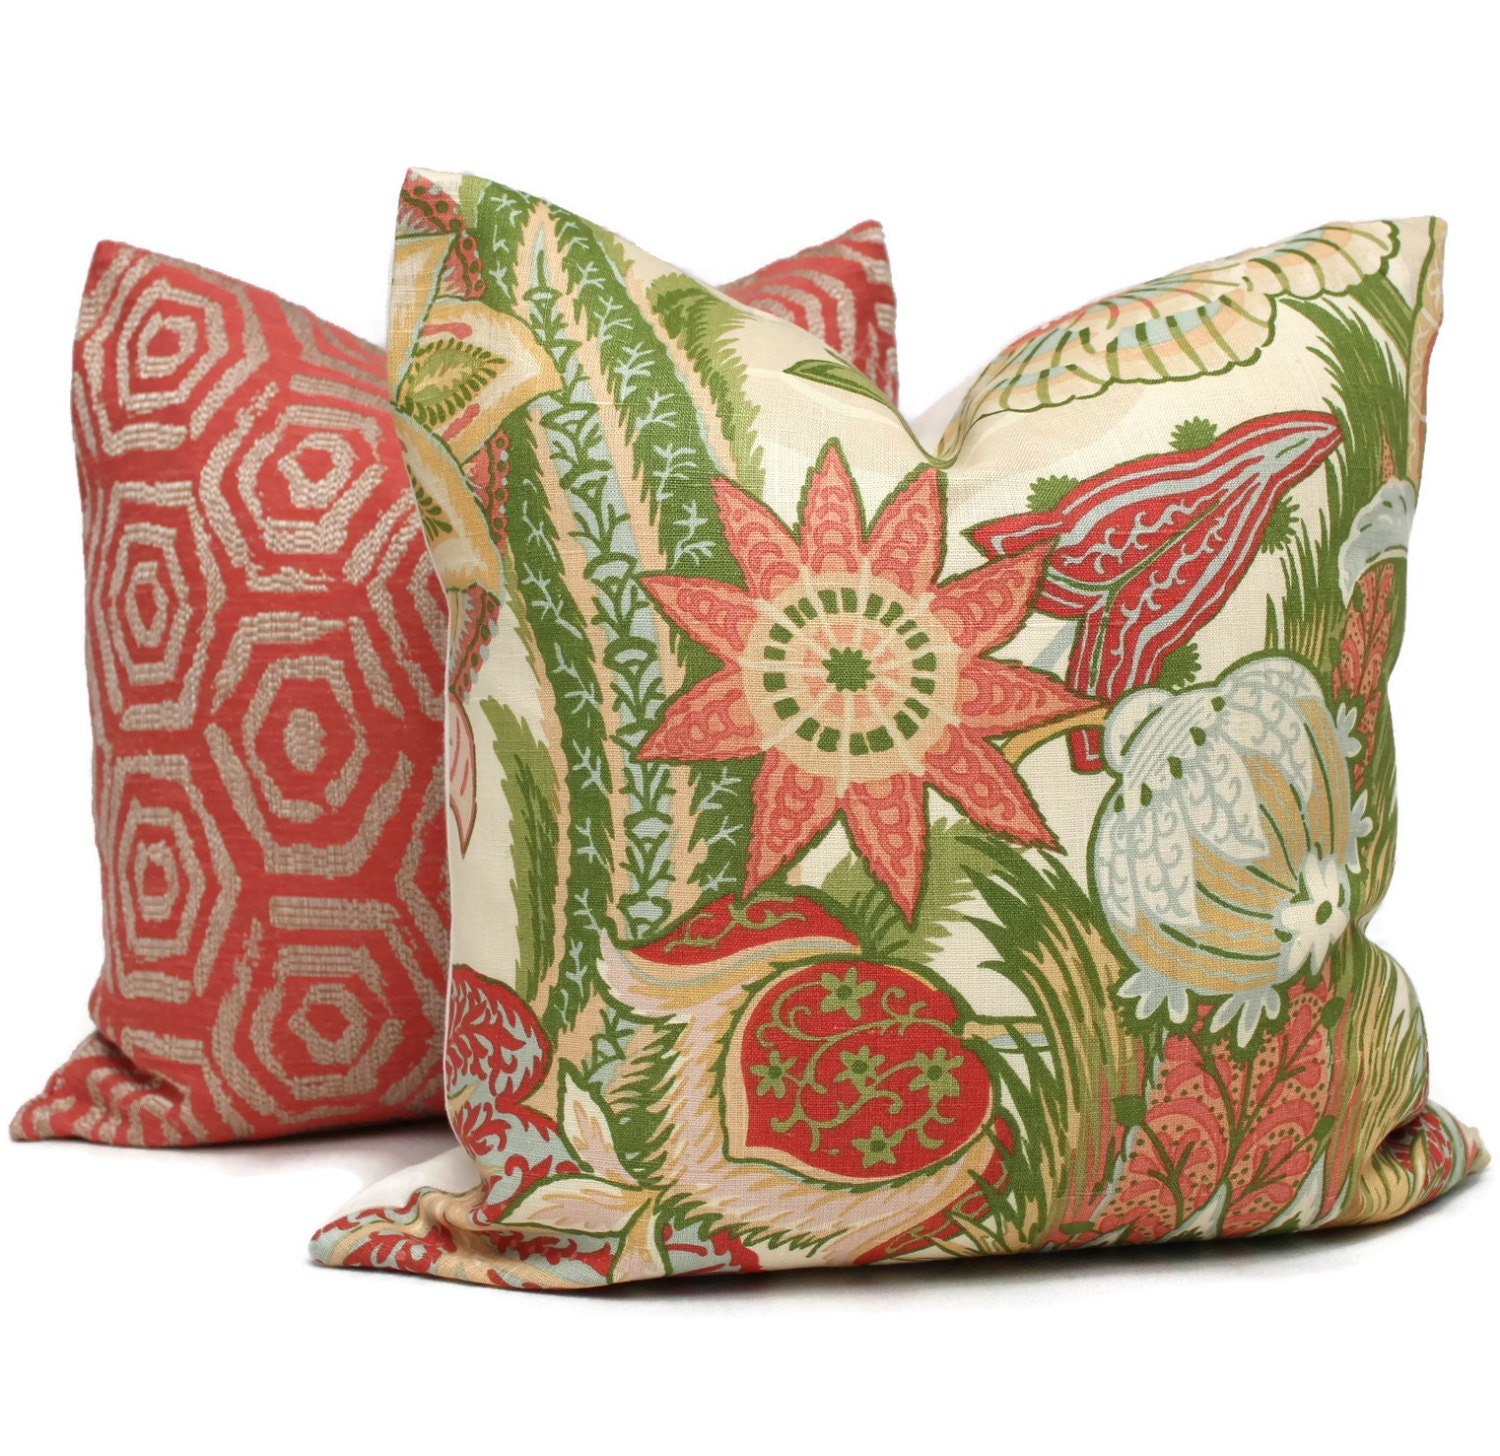 22x22 Throw Pillow Covers : Zanzibar Blush Decorative Pillow Cover 18x18 20x20 22x22